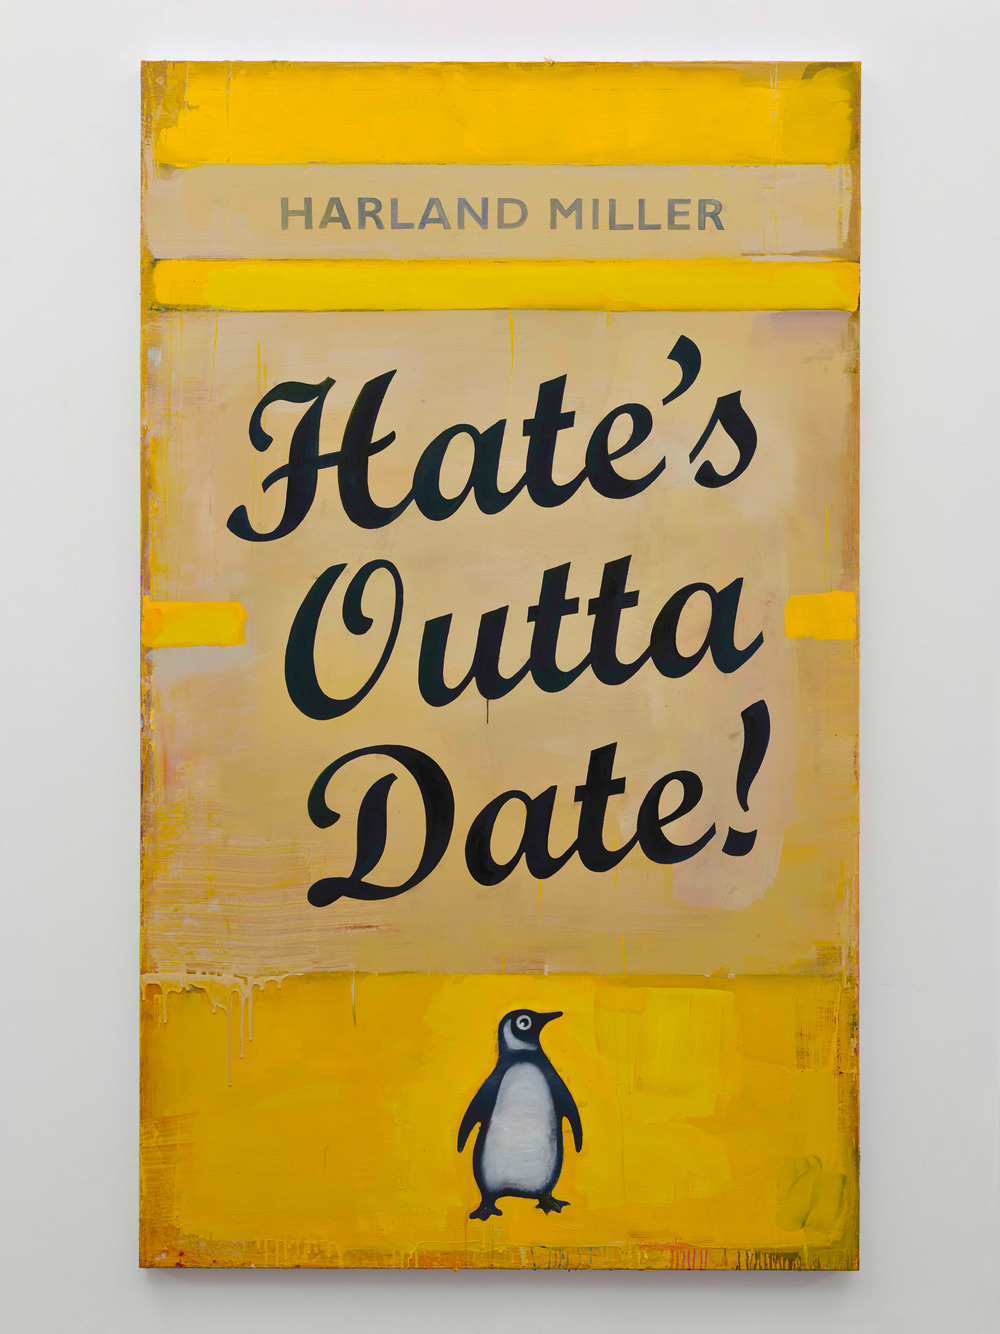 Harland Miller, Hate's Outta Date, 2016, Courtesy the artist and BlainSouthern, Photo Peter Mallet